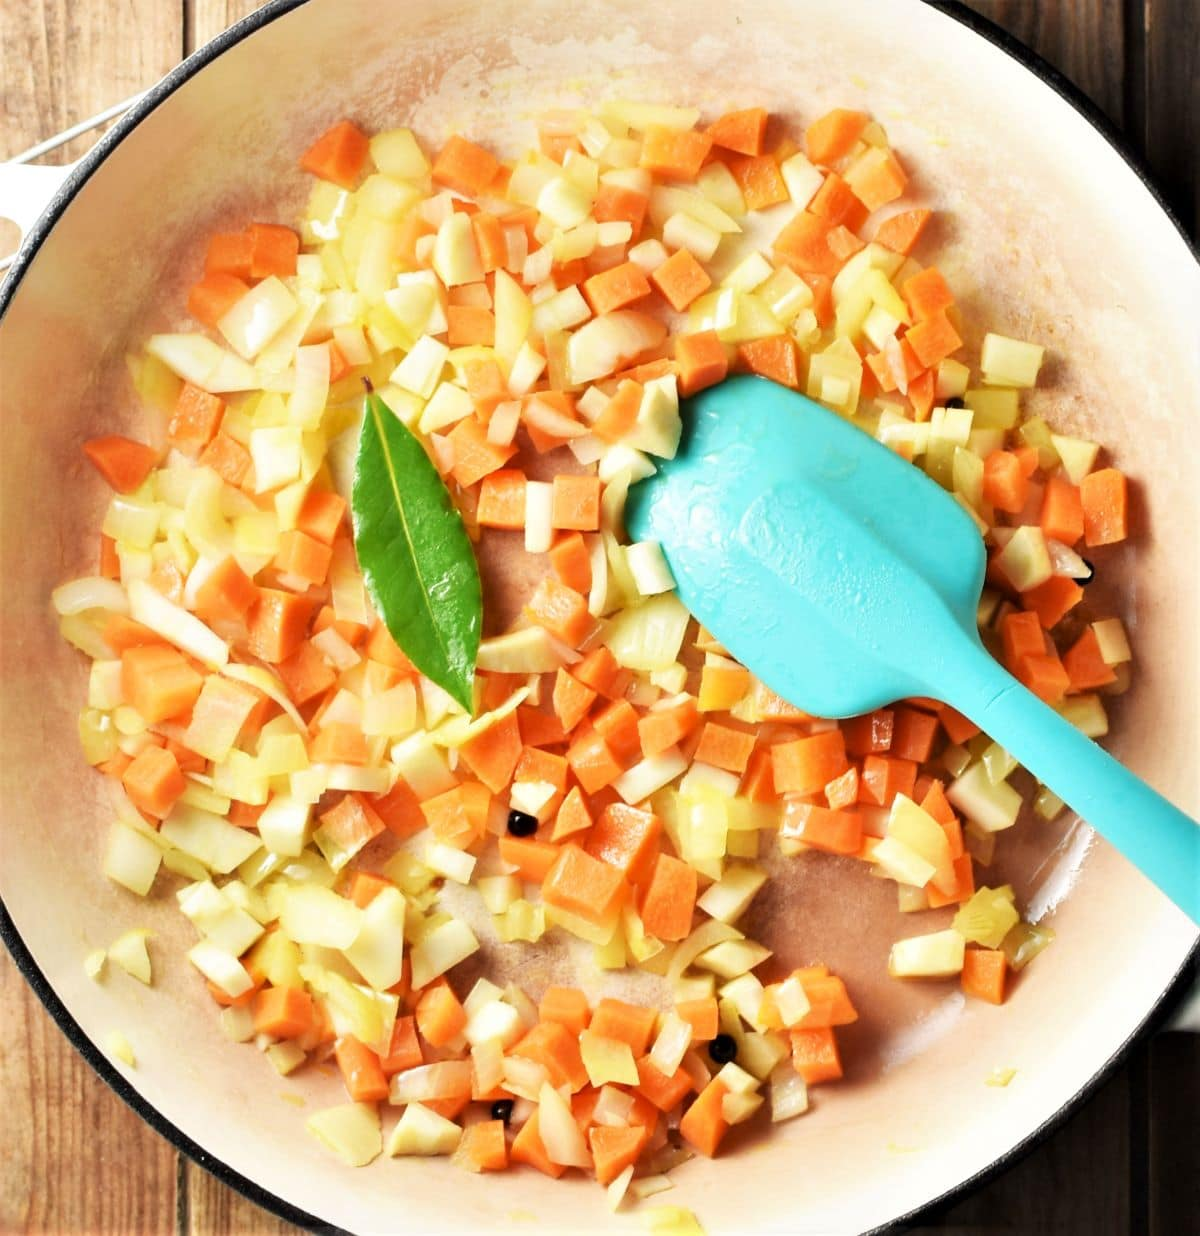 Diced vegetables in large pan with blue spoon.